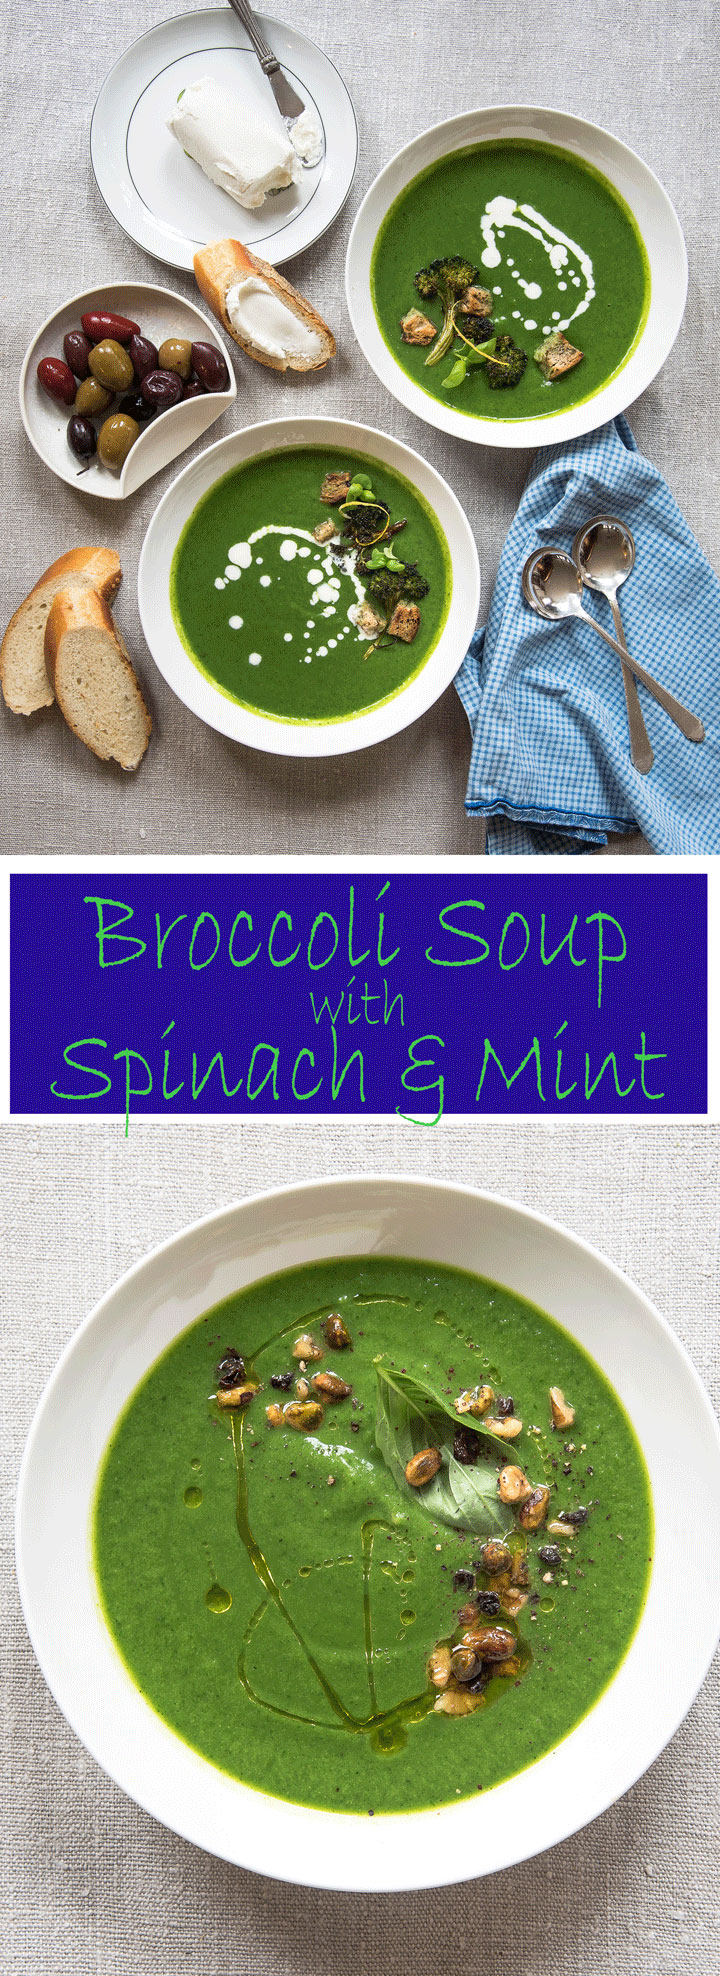 Broccoli Soup with spinach and mint. A healthy soup recipe with broccoli, spinach, basil and mint.